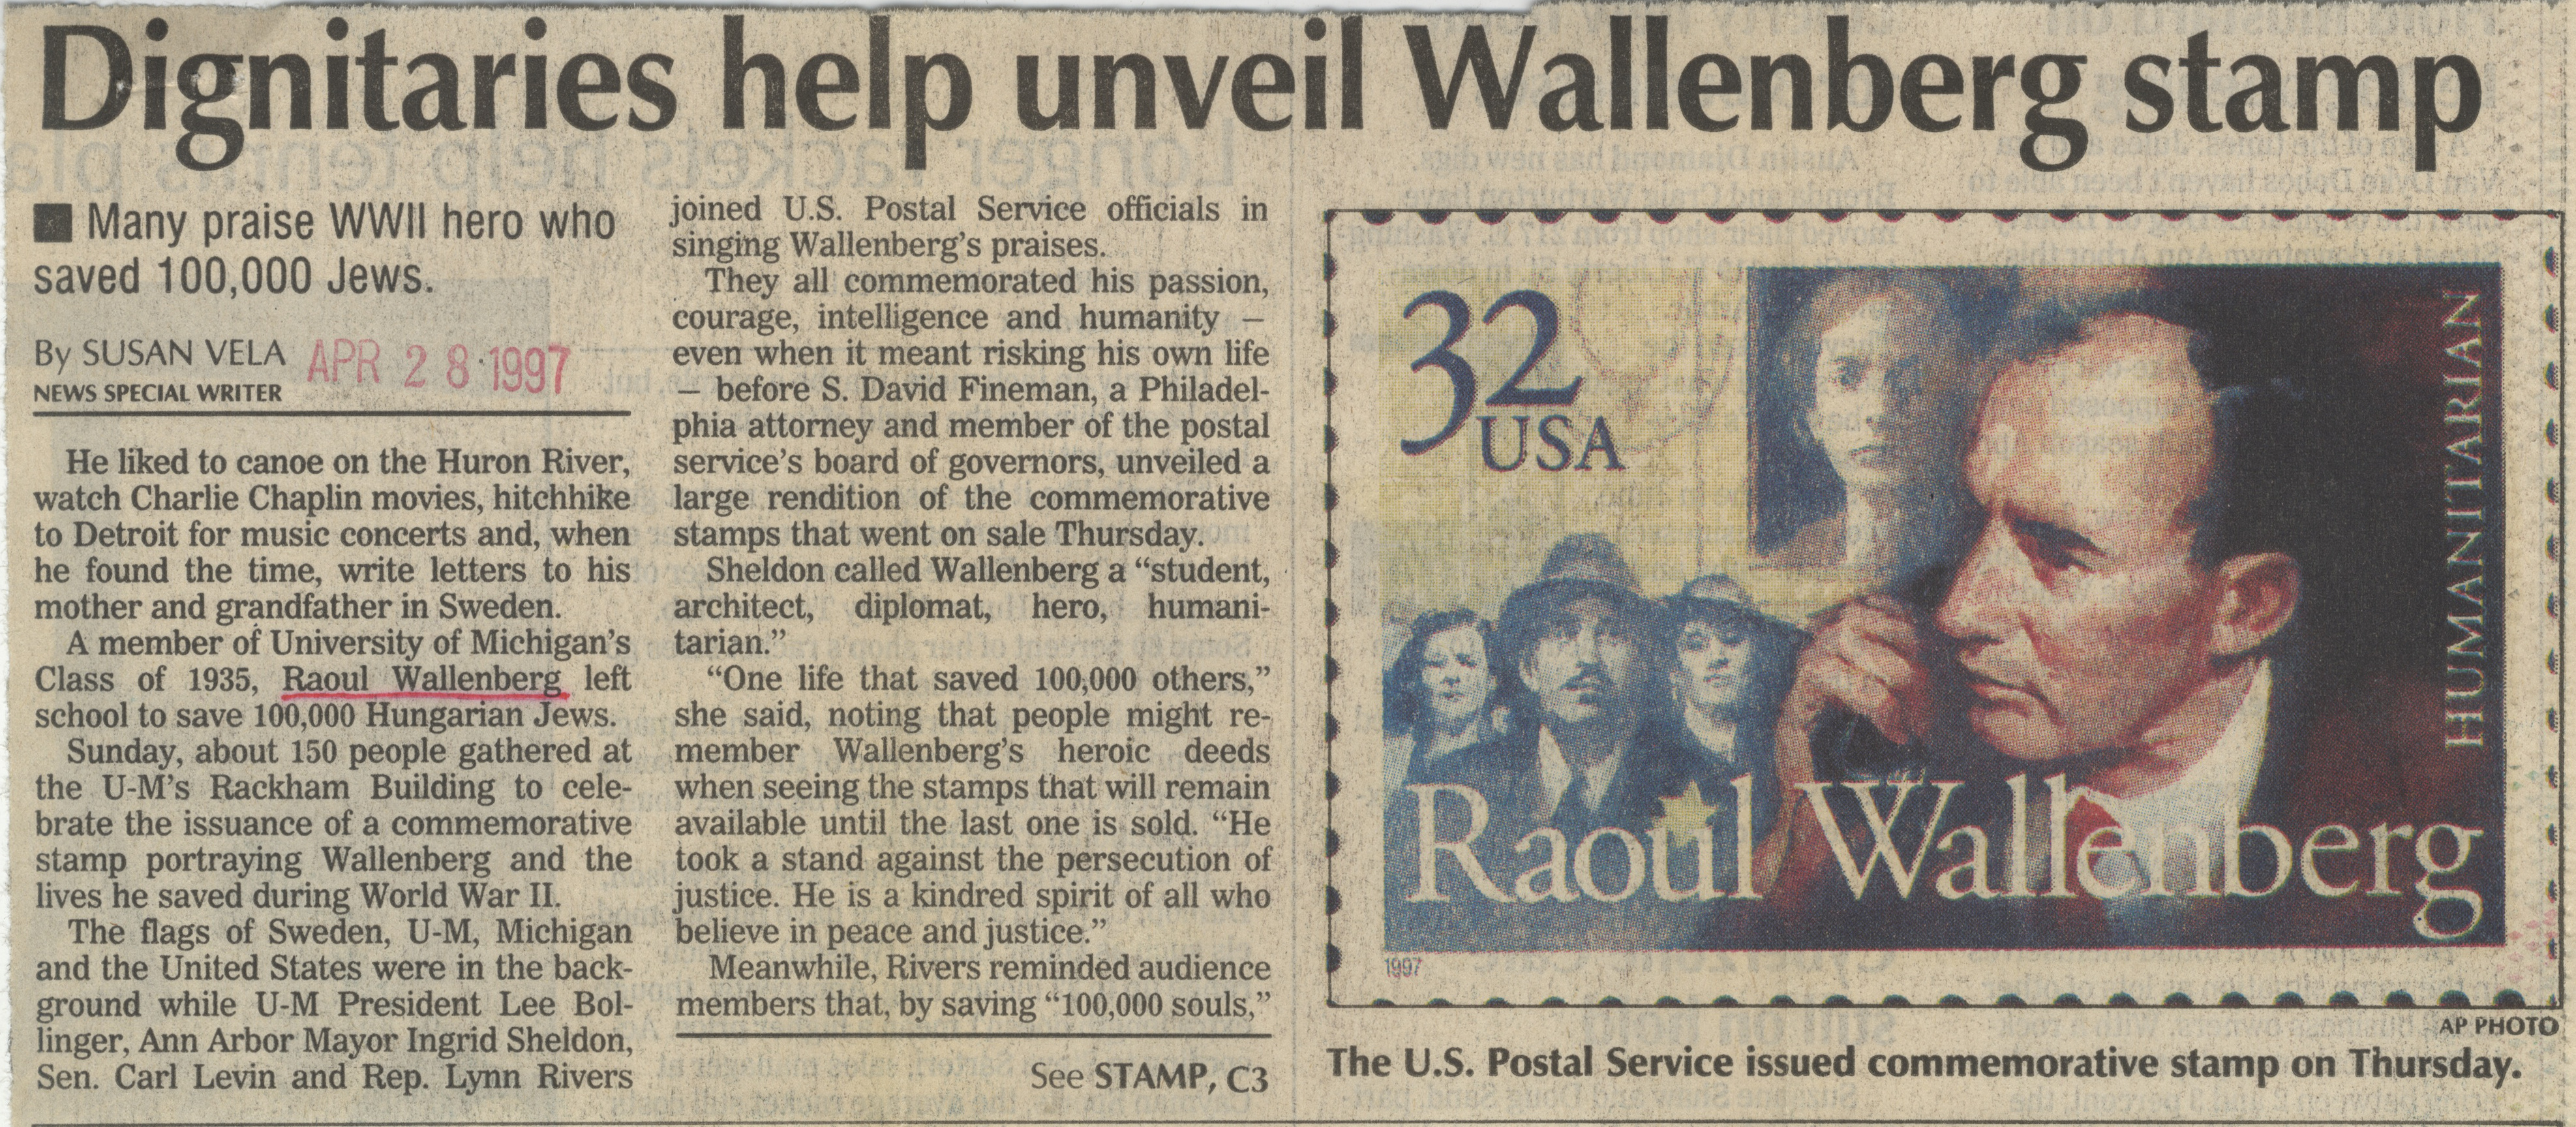 Dignitaries Help Unveil Wallenberg Stamp image